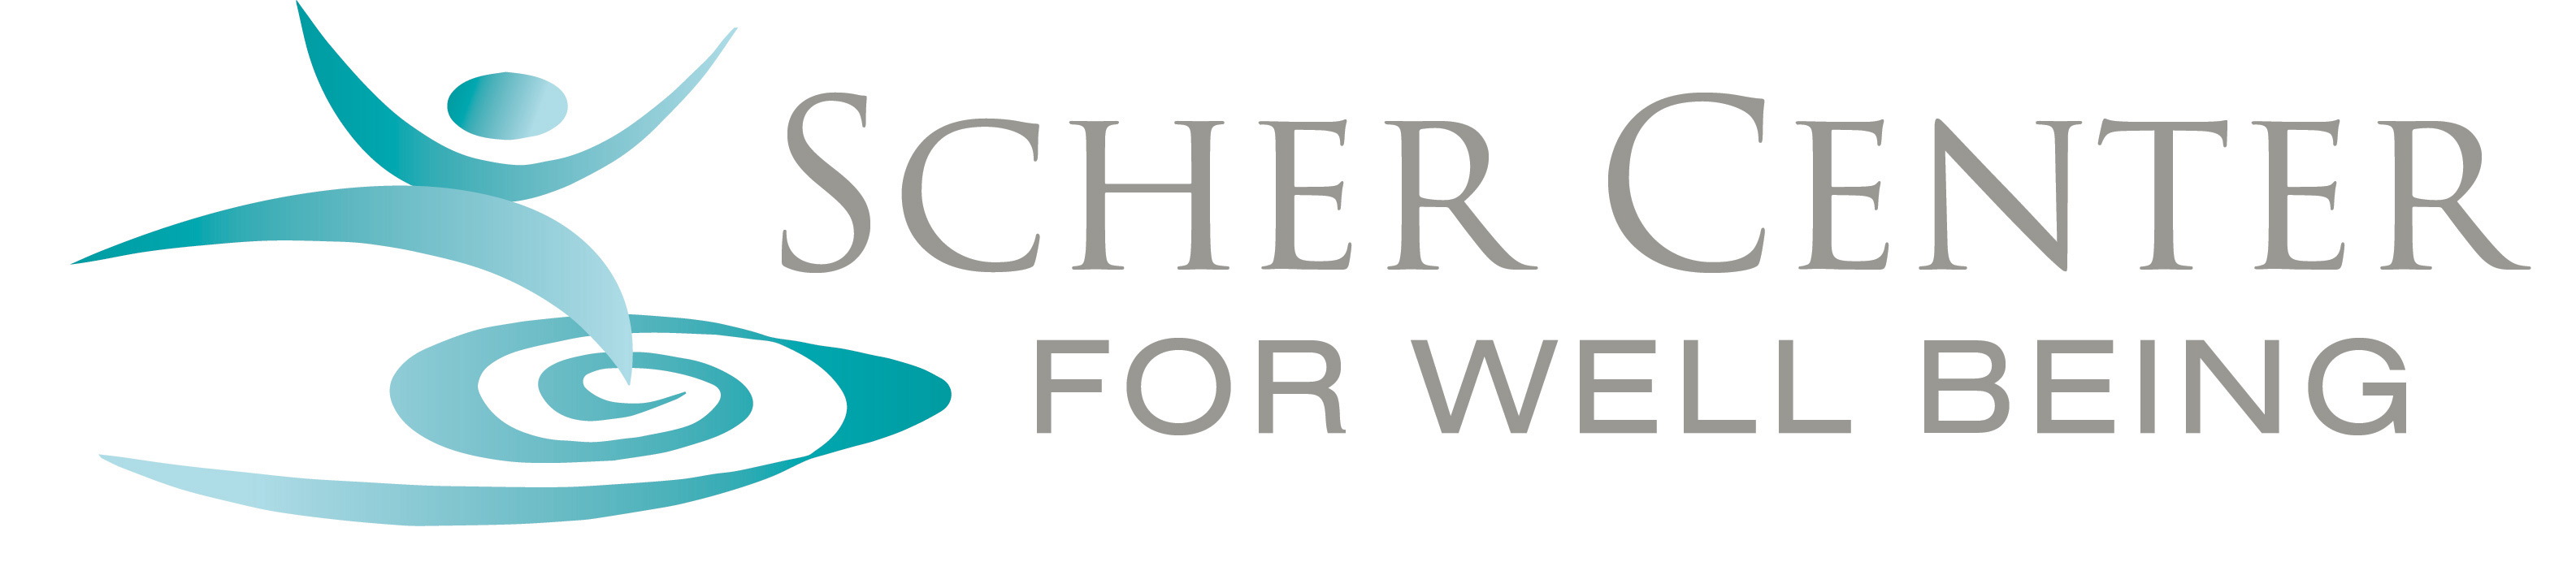 Scher Center for Wellbeing